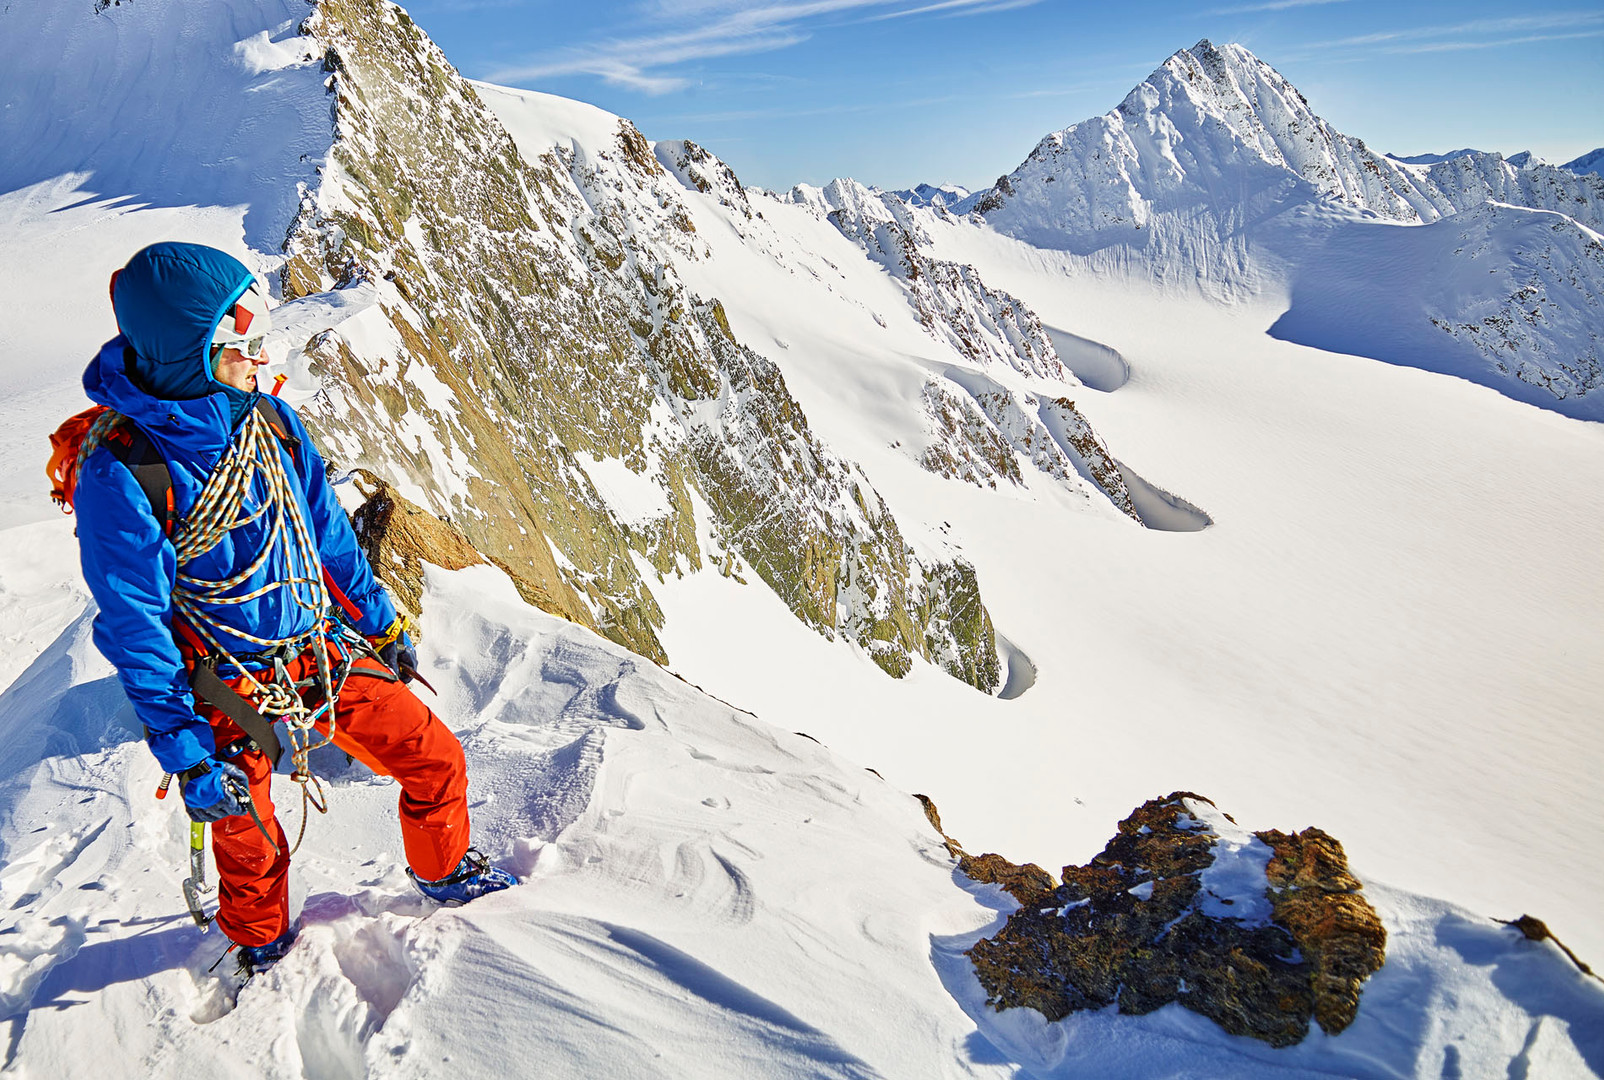 alps mountaineering, Mike Fuchs